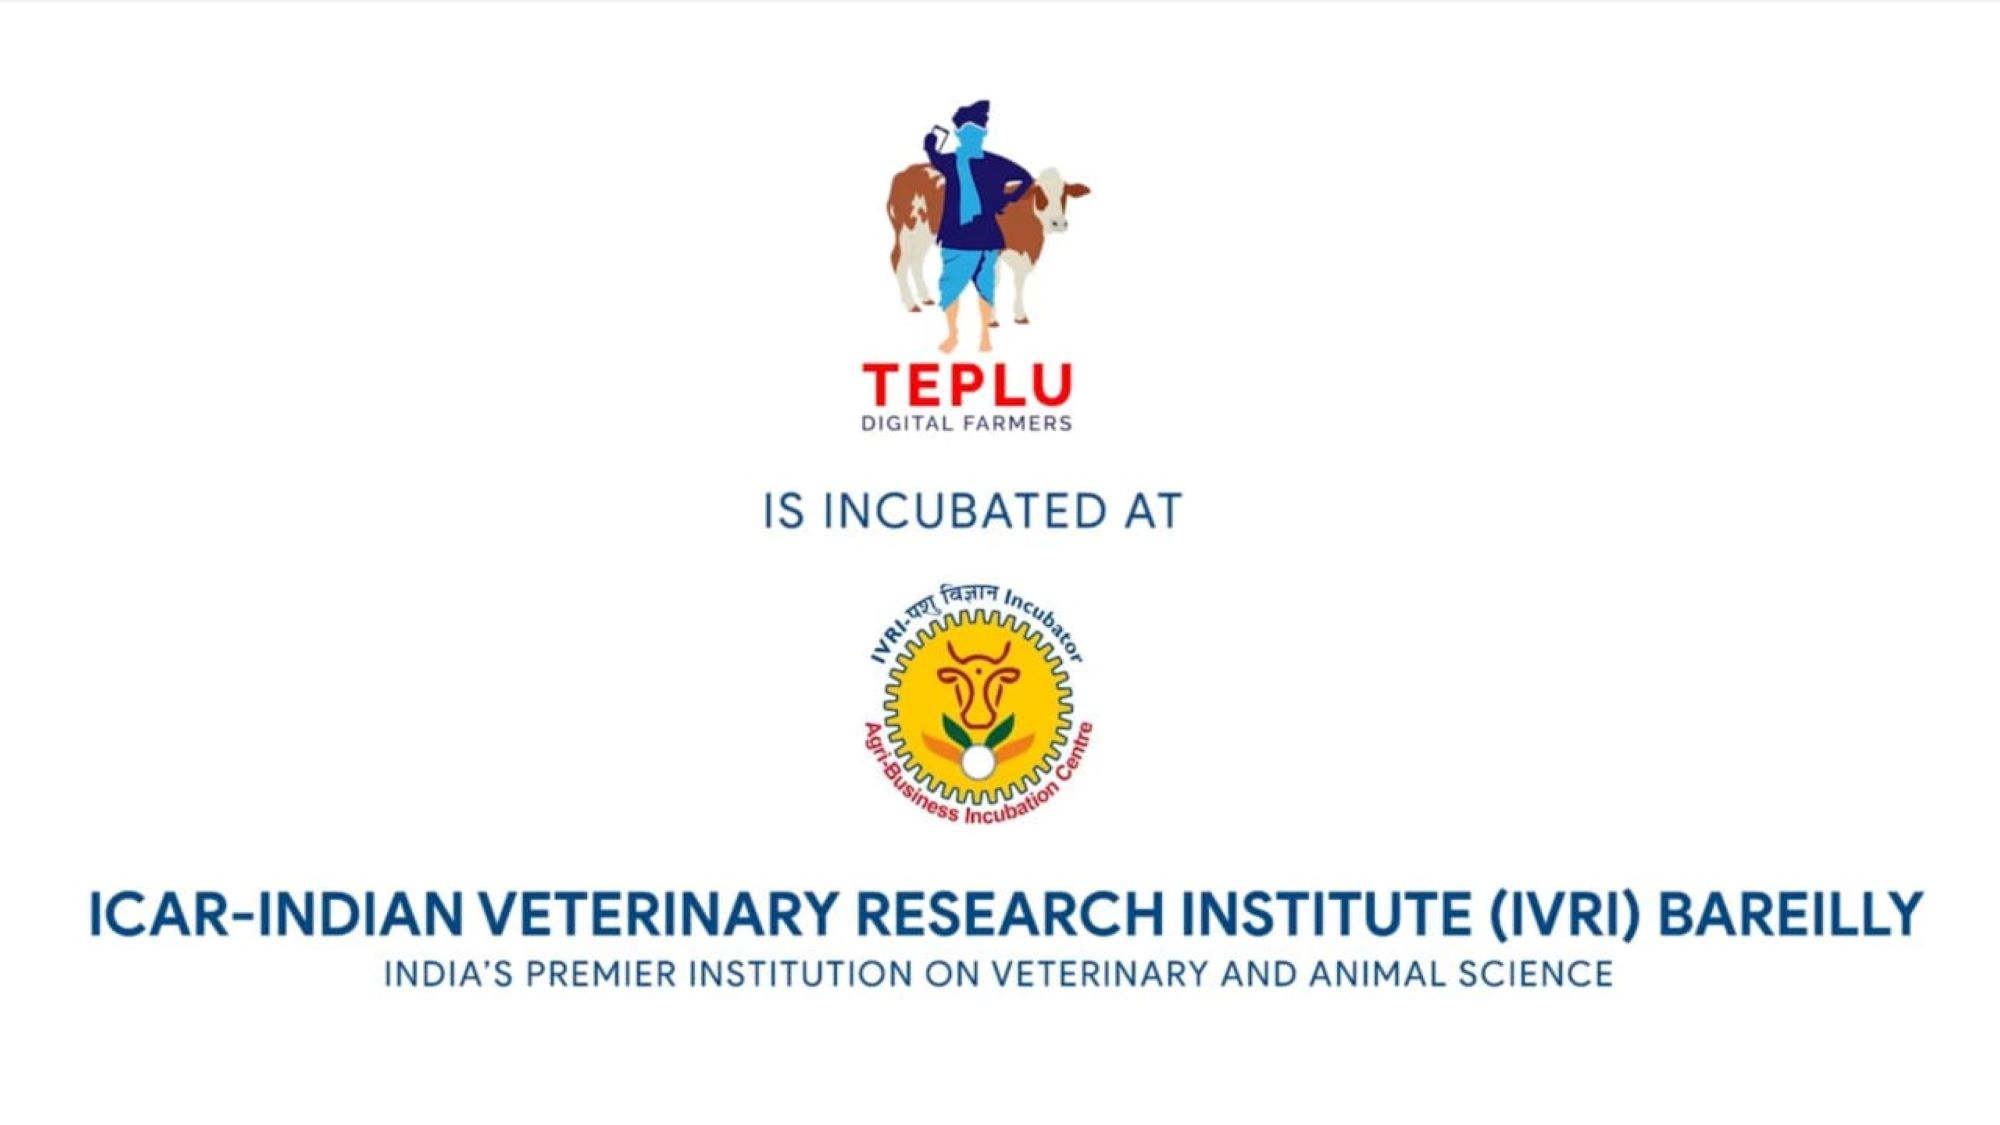 With the help of scientists and experts in dairy farming Teplu creates online courses